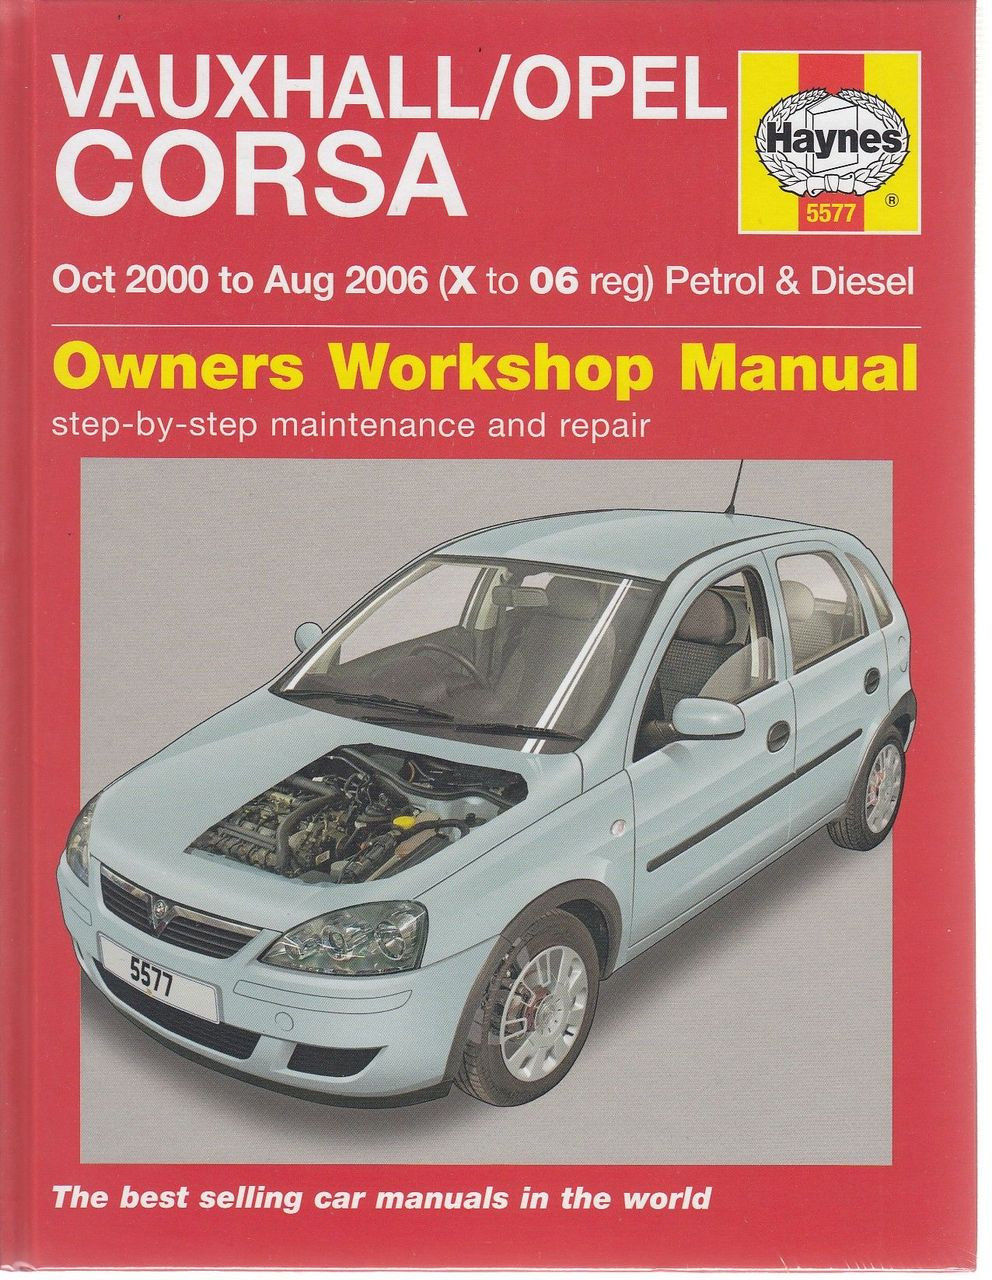 holden barina 2000 2006 petrol diesel workshop manual rh automotobookshop com au opel astra h repair manual pdf opel astra h 2008 service manual